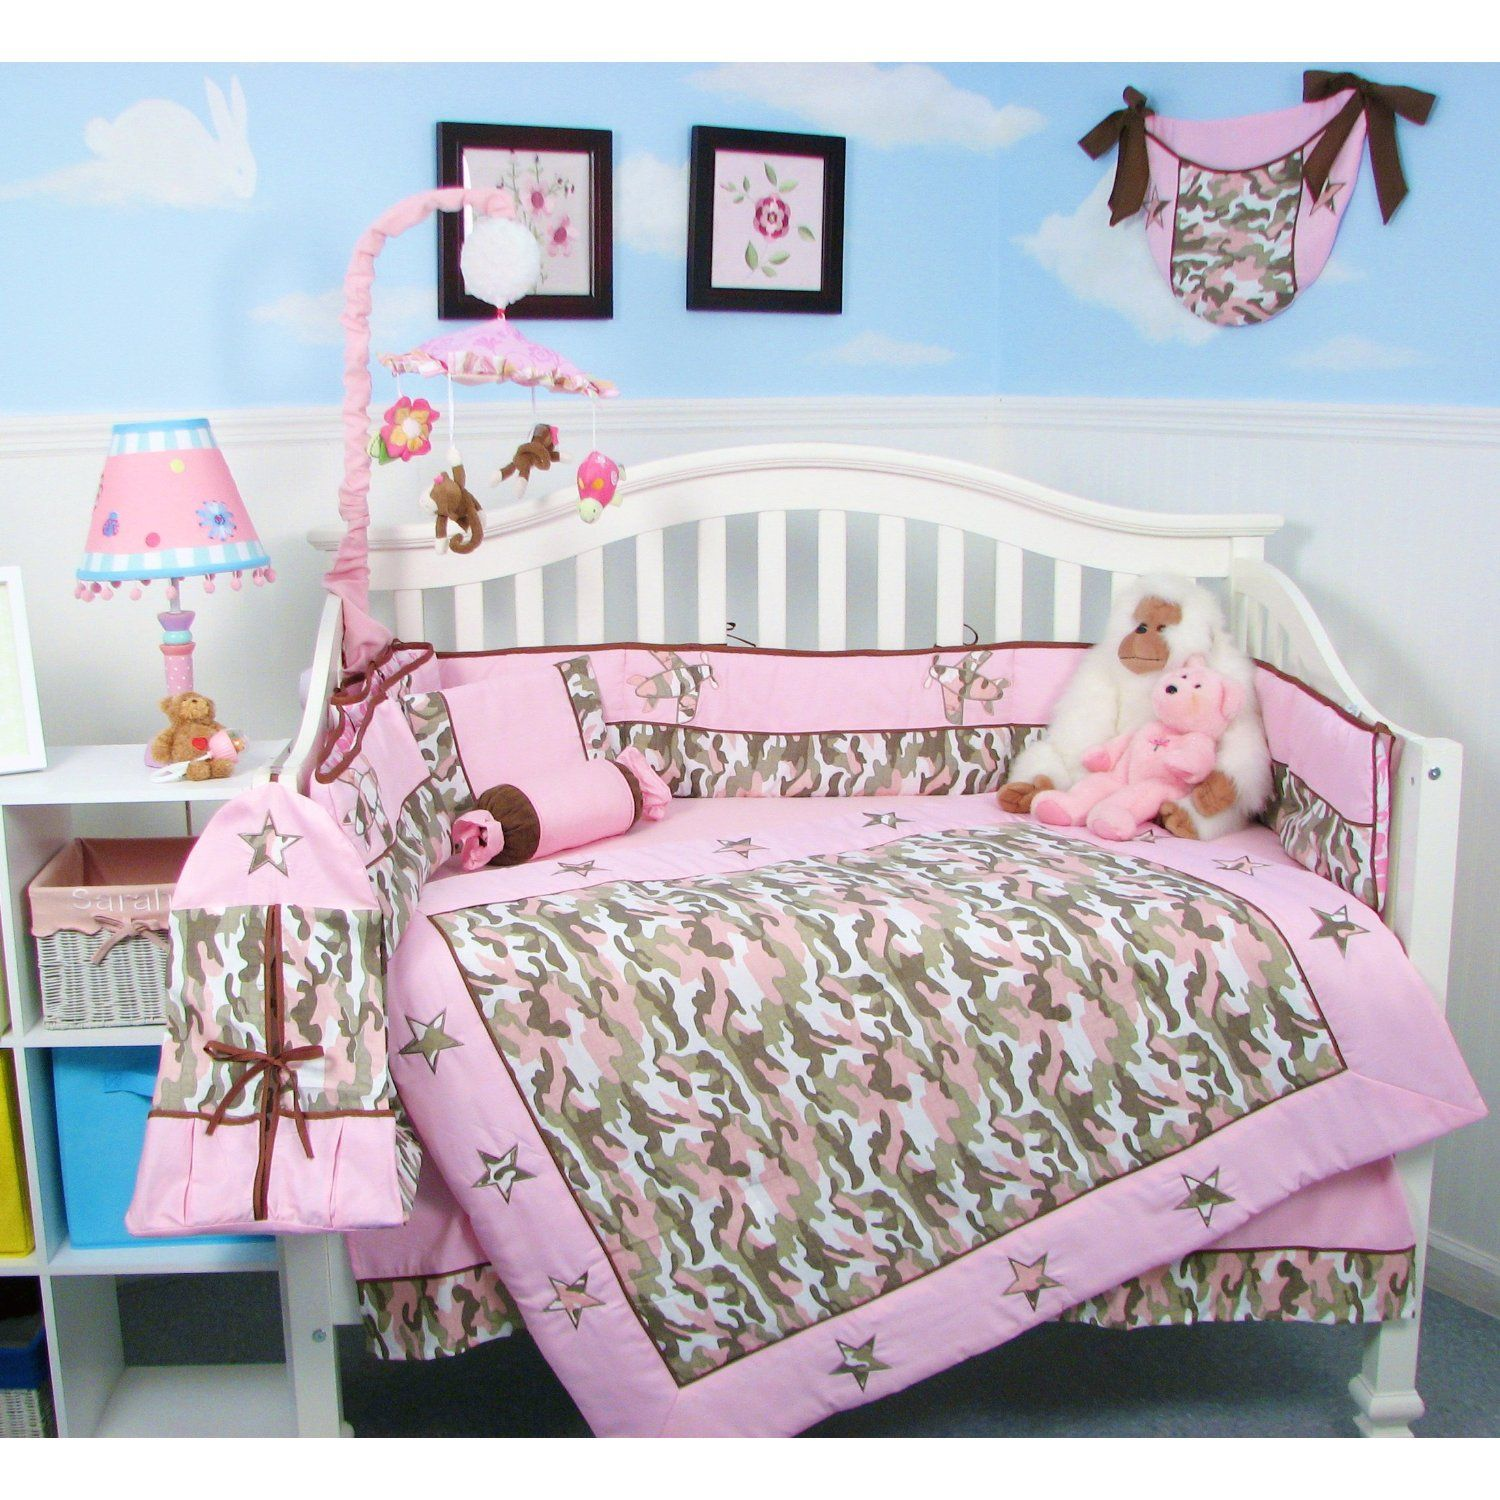 Pink camo baby bedding mossy oak - Pink Camo Baby